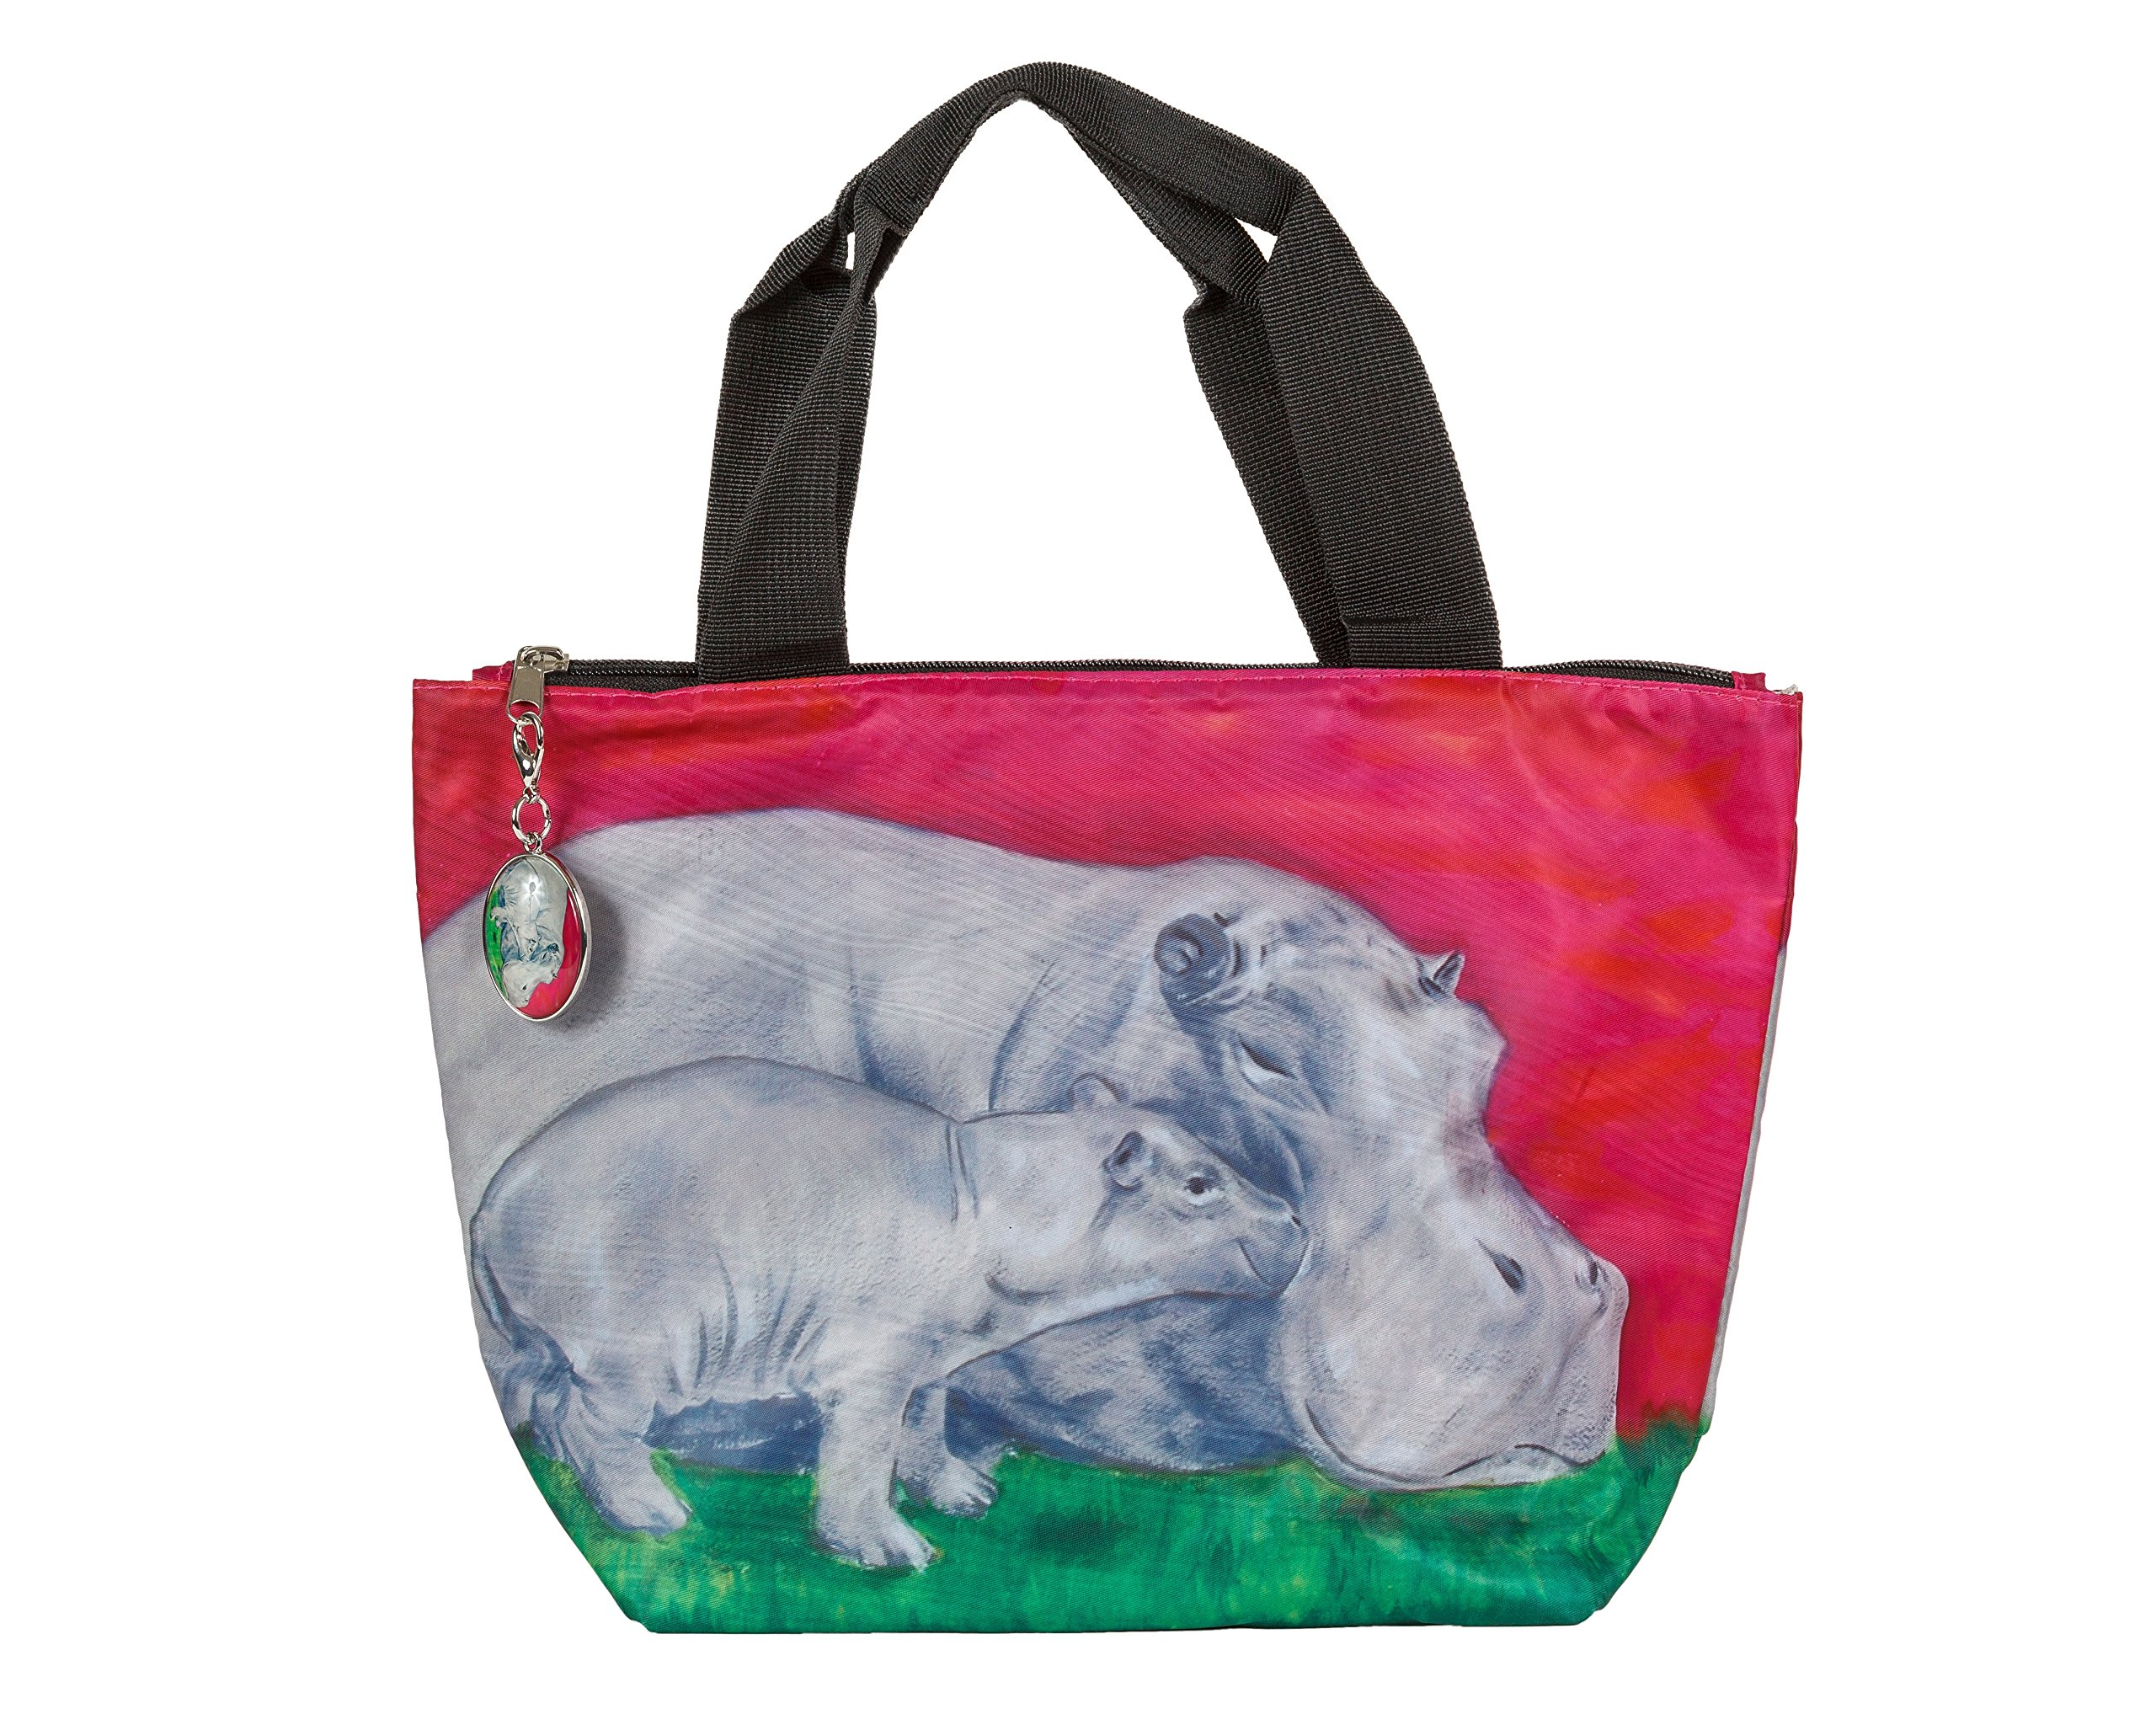 Hippo Lunch Bag, Lunch Tote with Matching Zipper Charm - Animals, Full Insulated